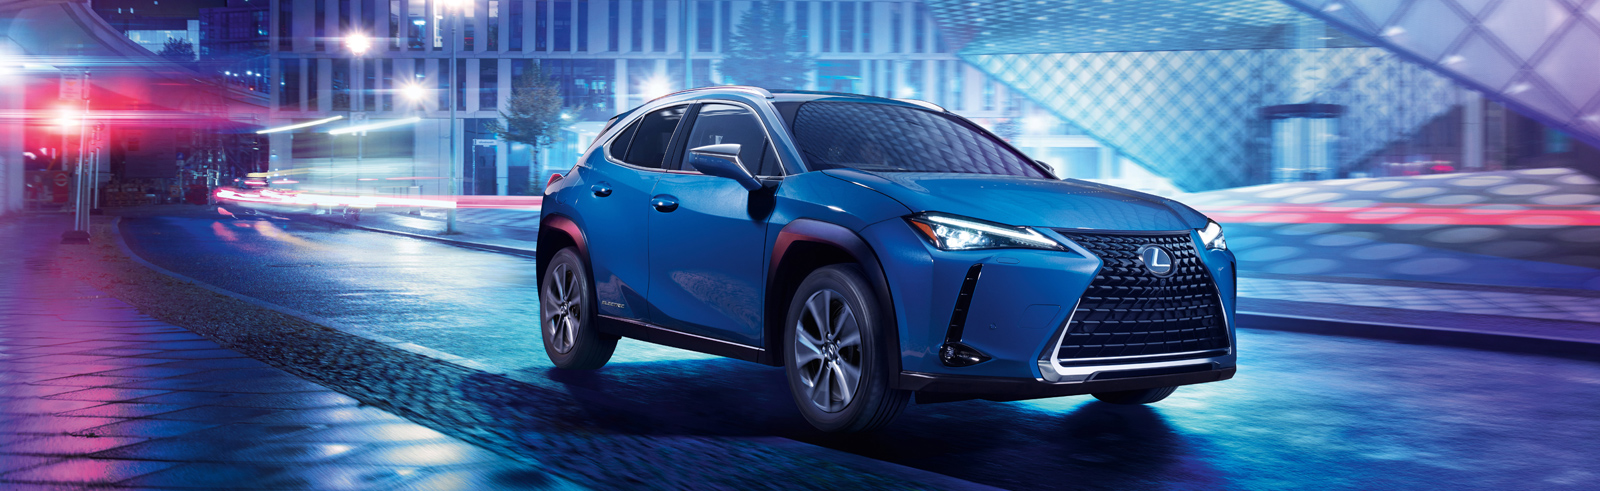 The Lexus UX 300e receives a formal announcement for Europe